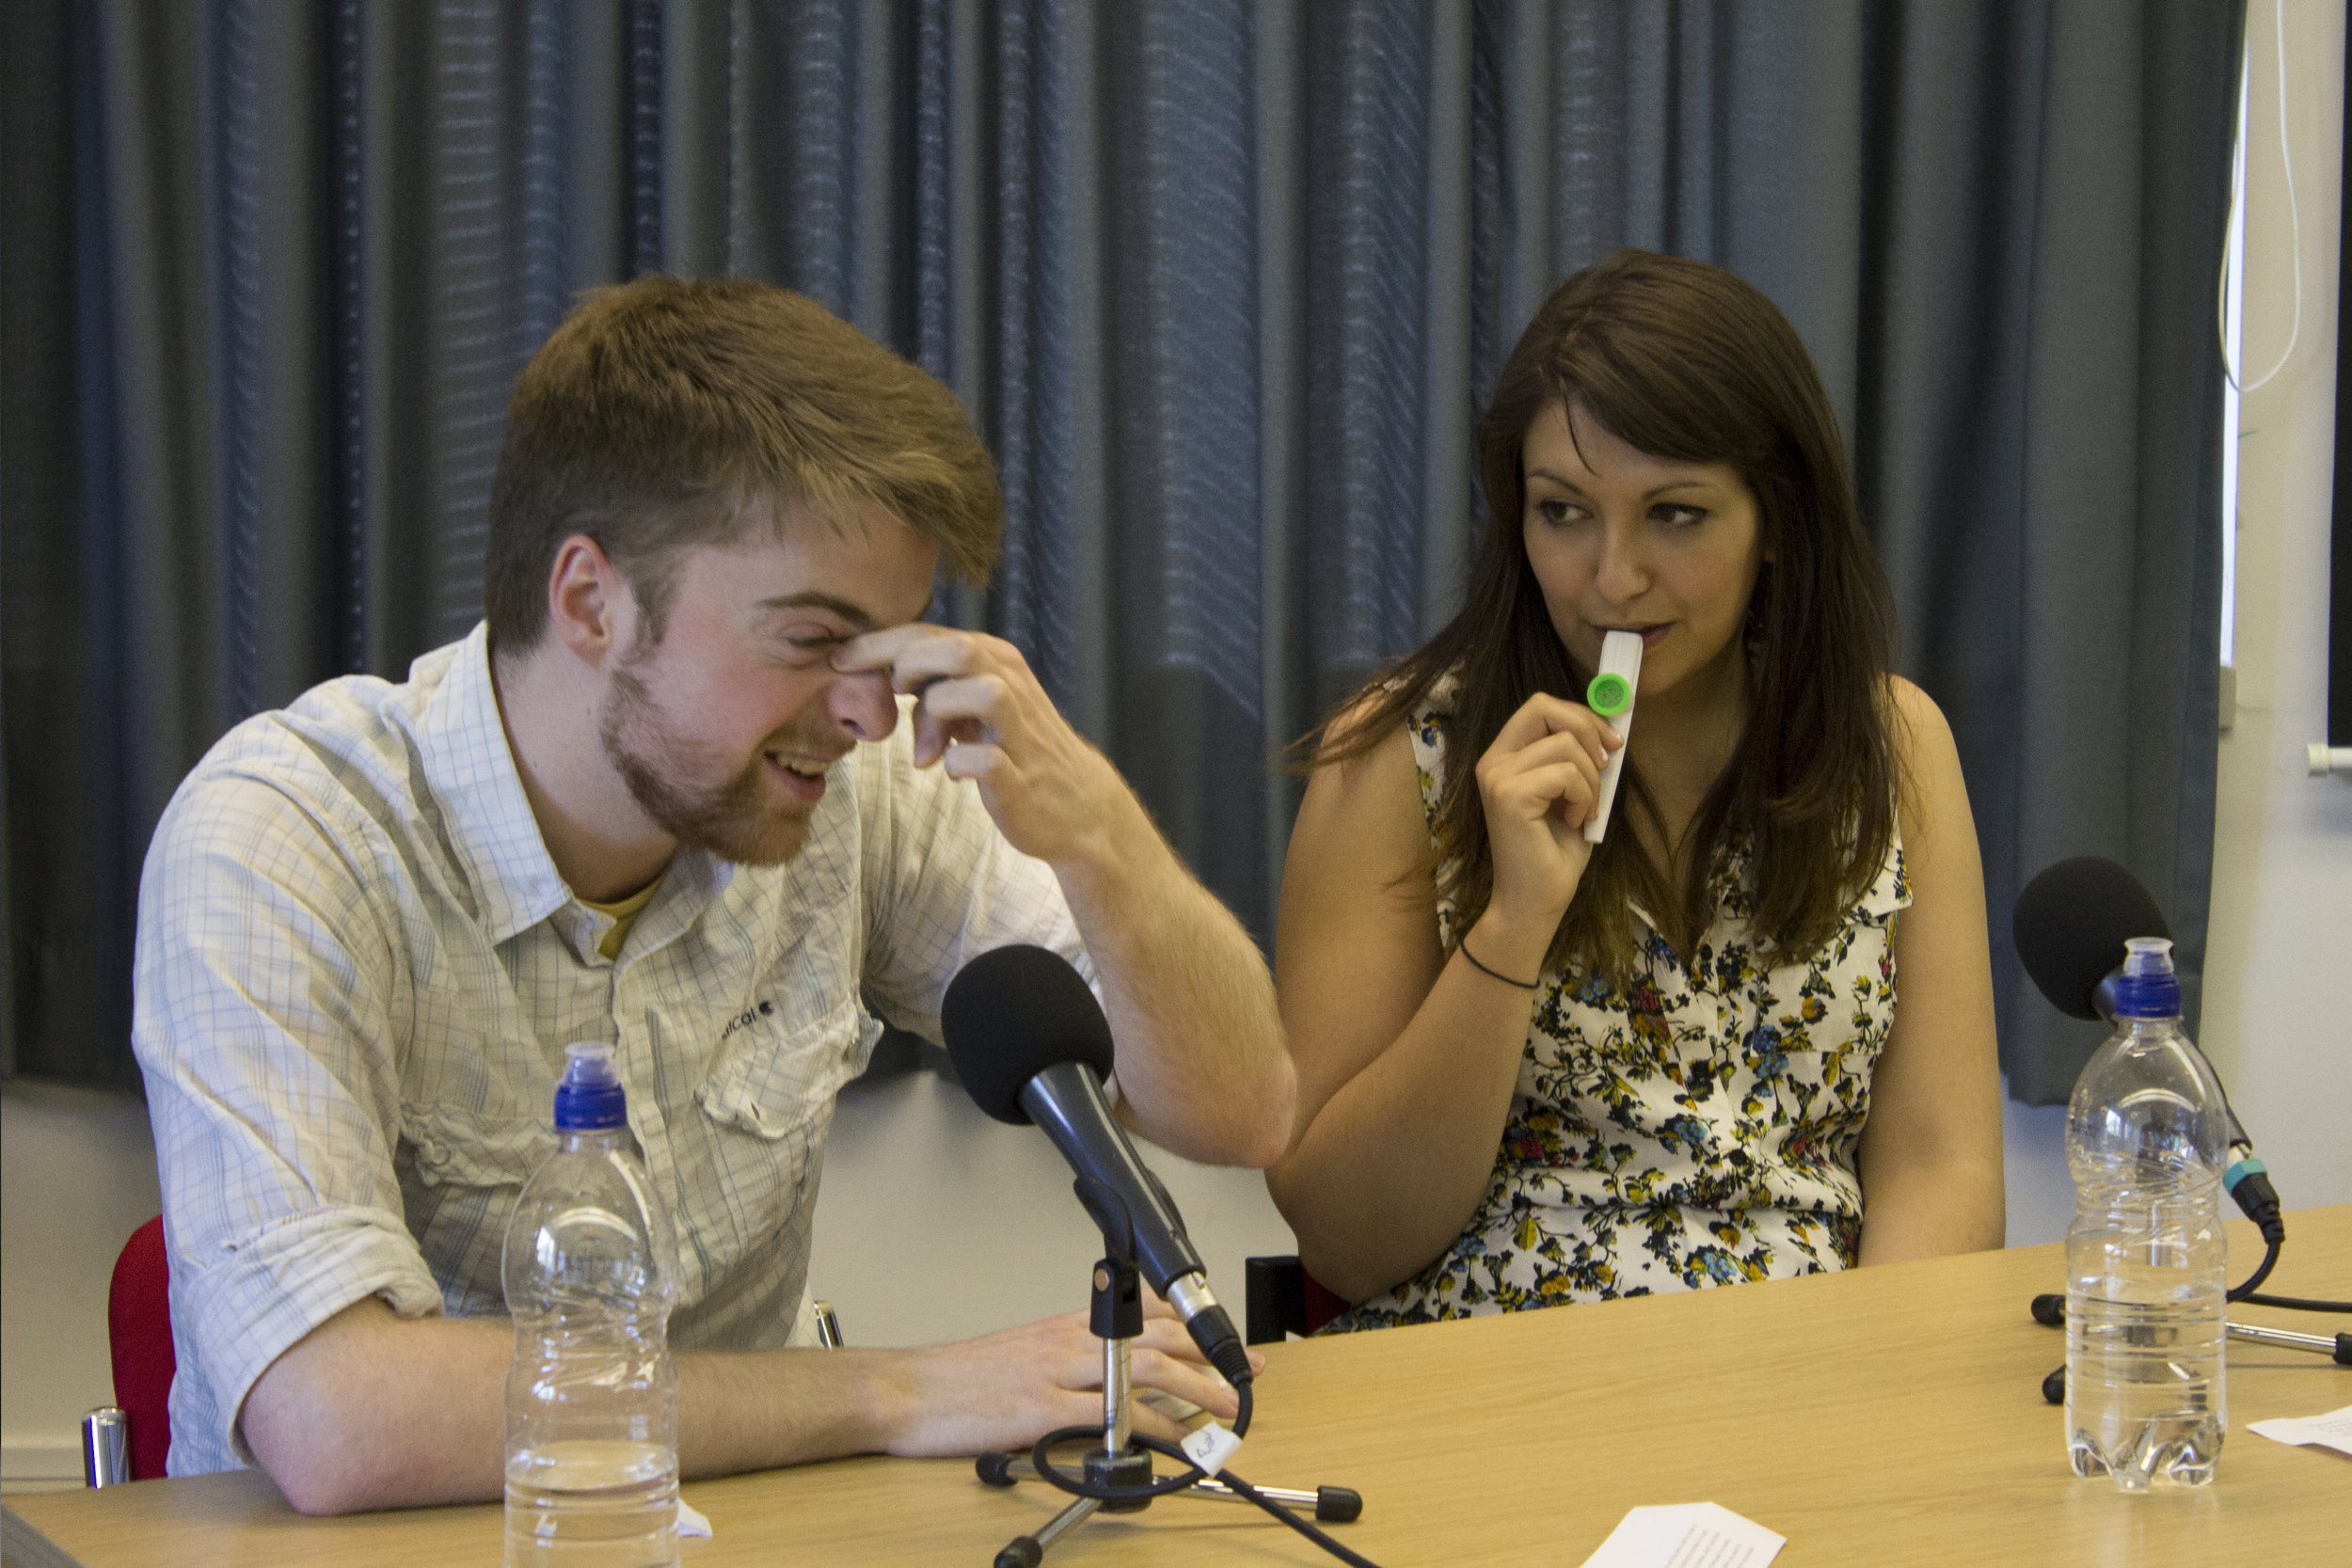 Ed Clark and Amy Johnson on The Quizzical Look